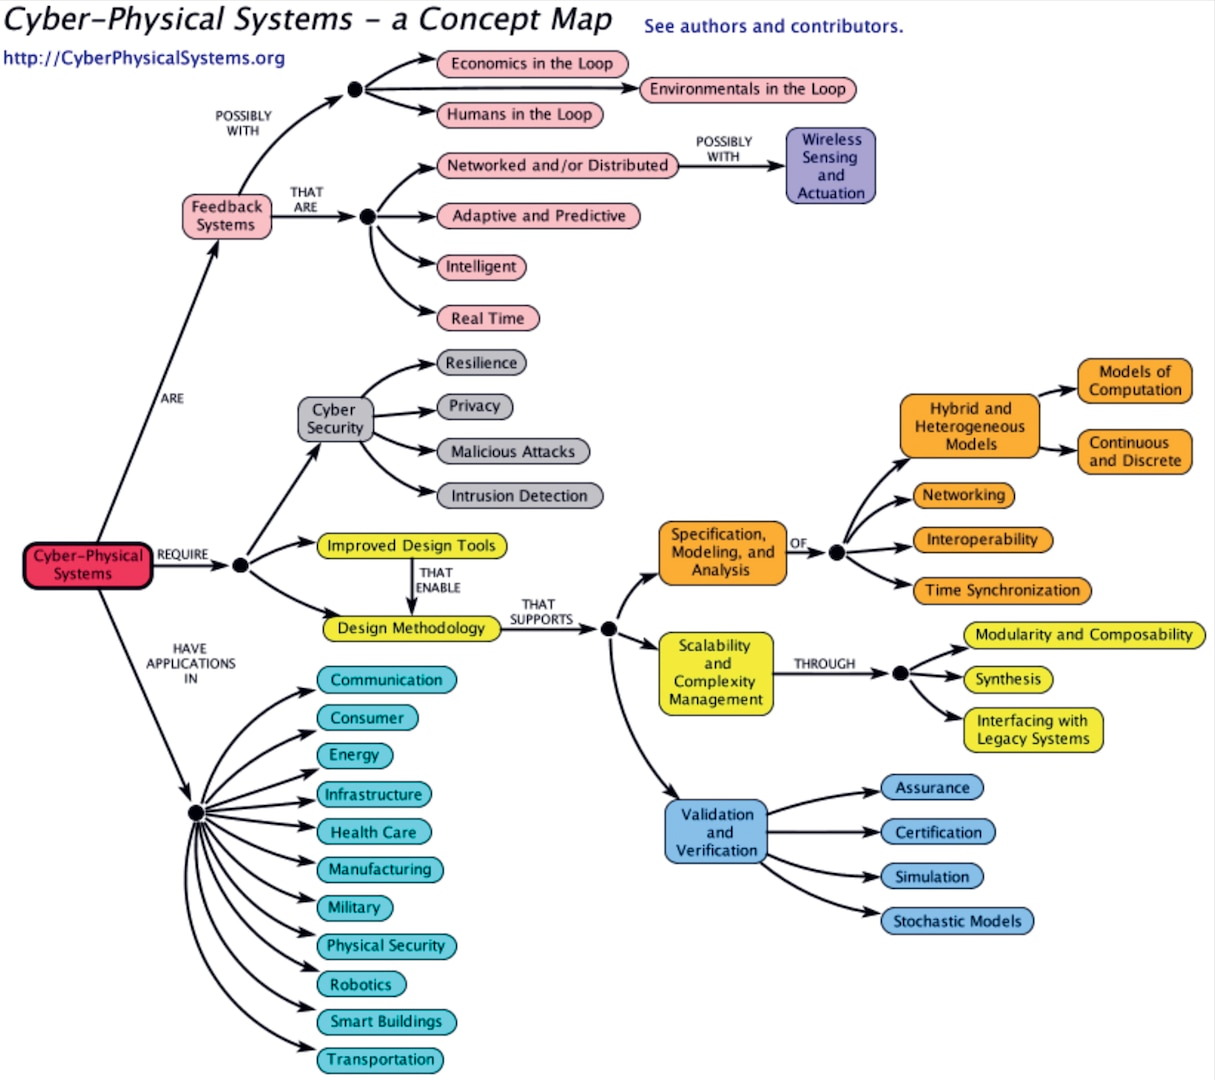 Figure 4. Cyber–Physical Systems, a Concept Map.